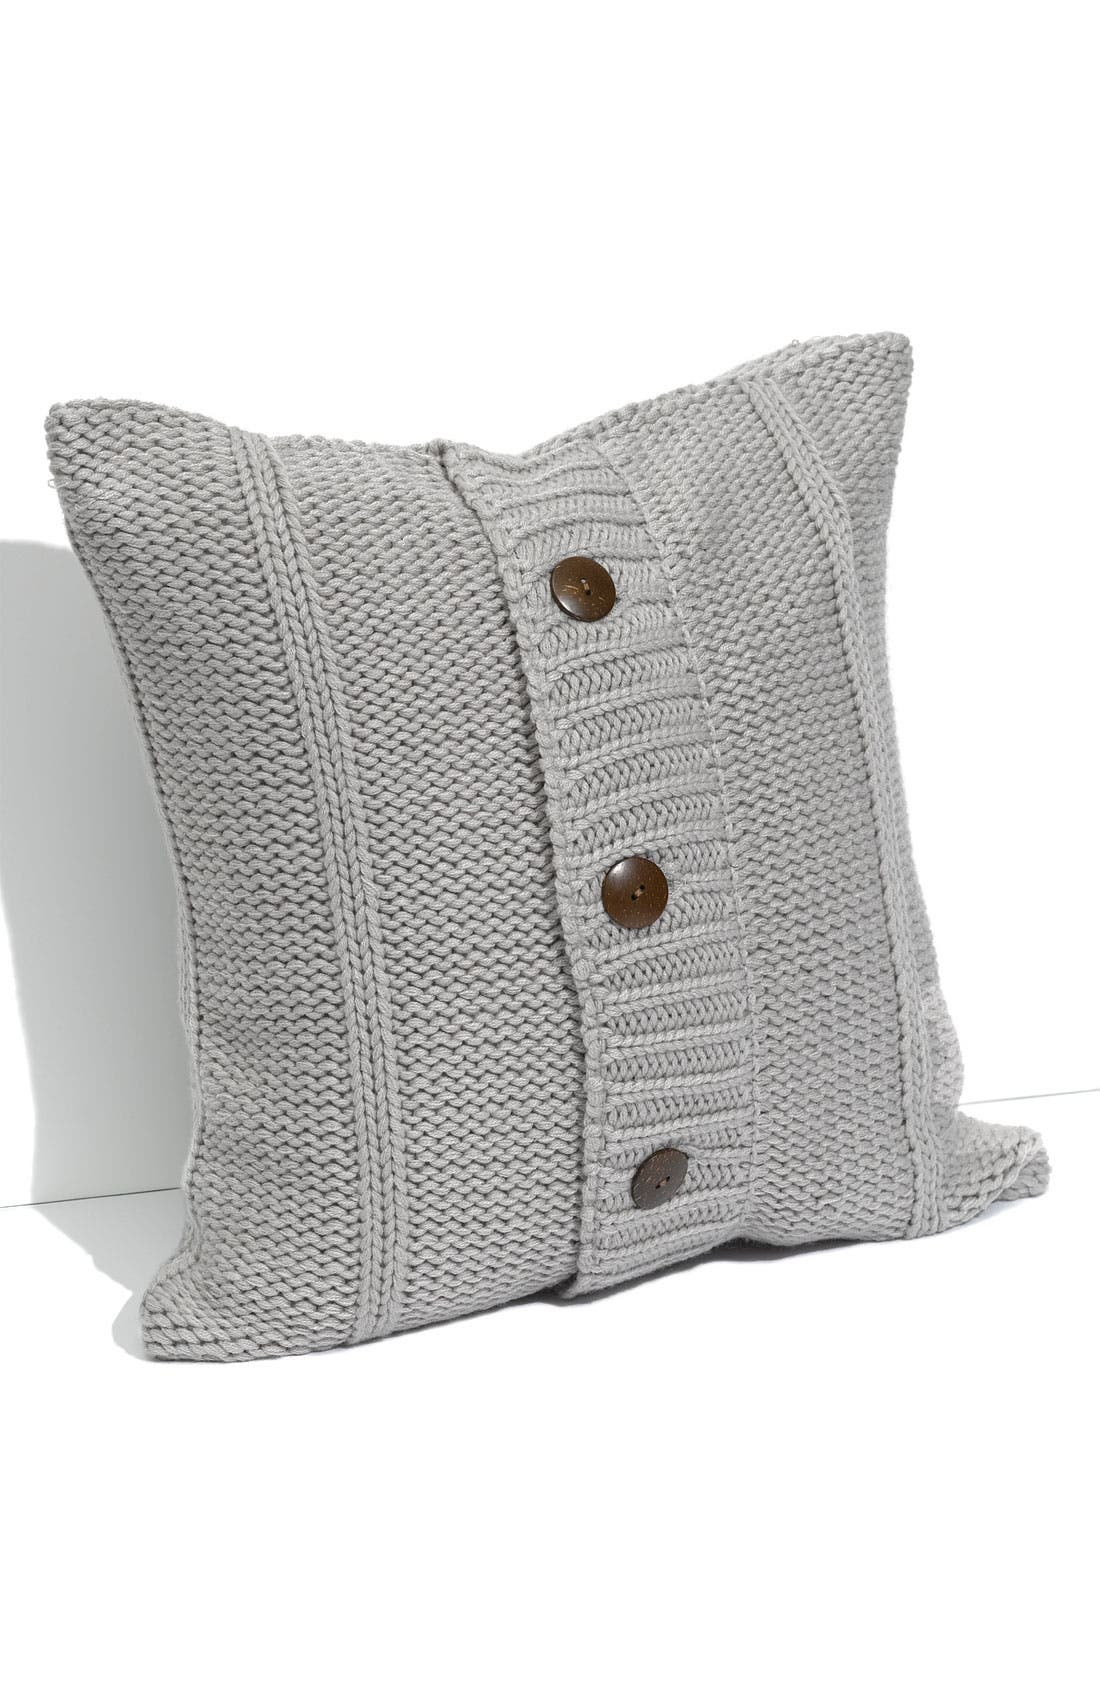 Alternate Image 1 Selected - Nordstrom at Home Rib Knit Pillow